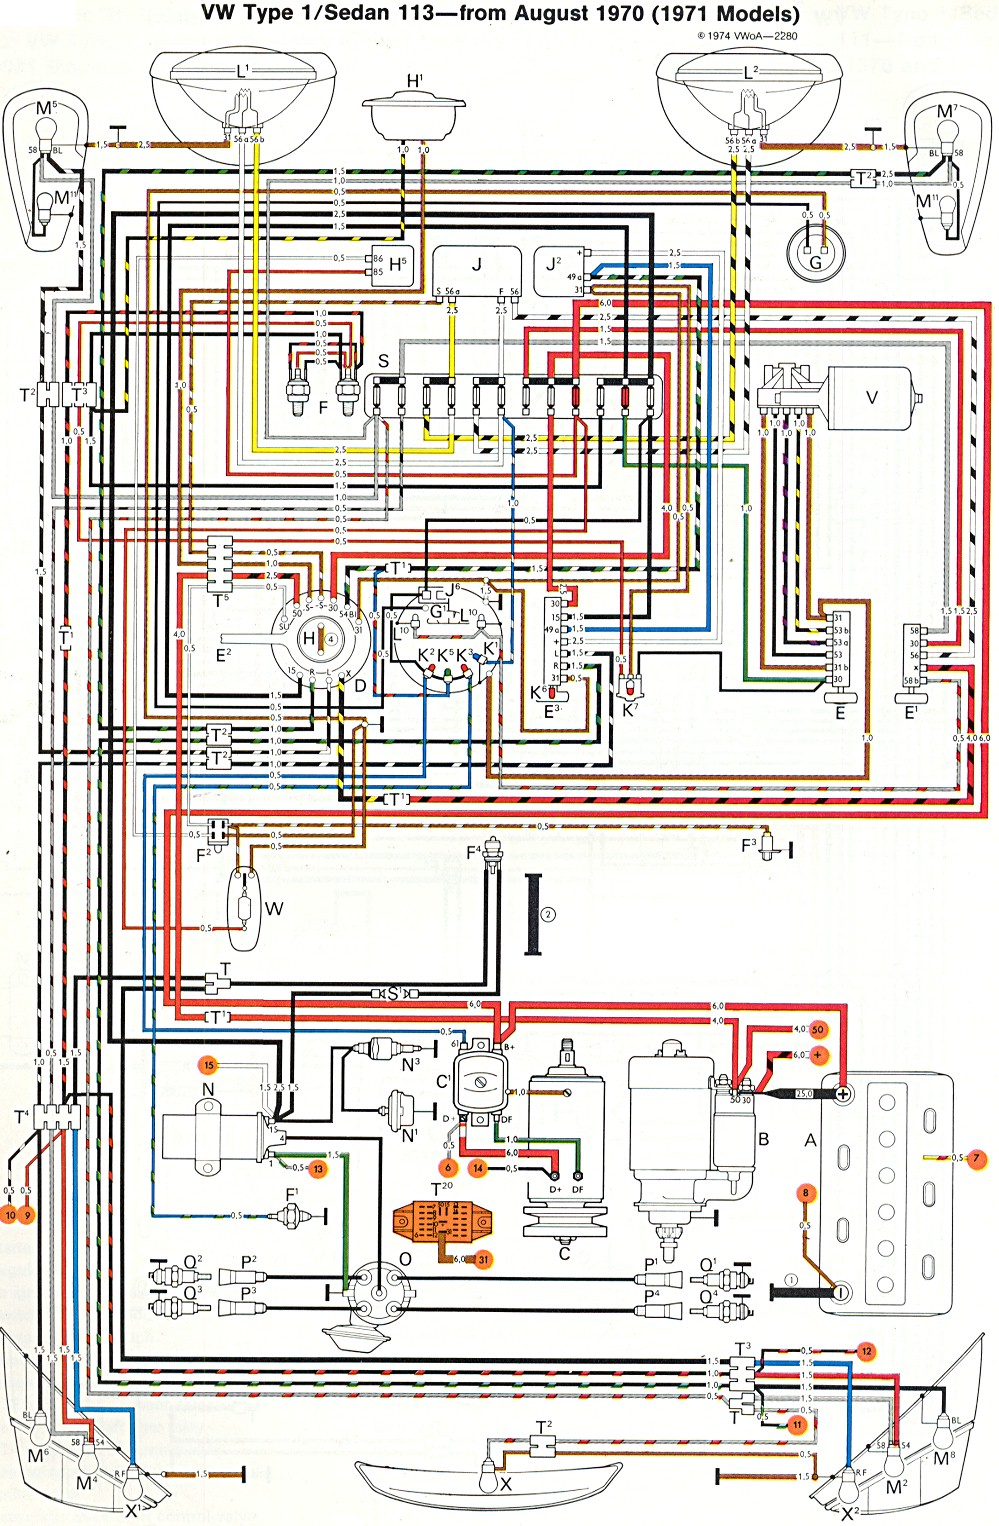 bug_super_71 vw wiring harness diagram cj7 wiring harness diagram \u2022 wiring 1969 vw bug wiring harness at reclaimingppi.co